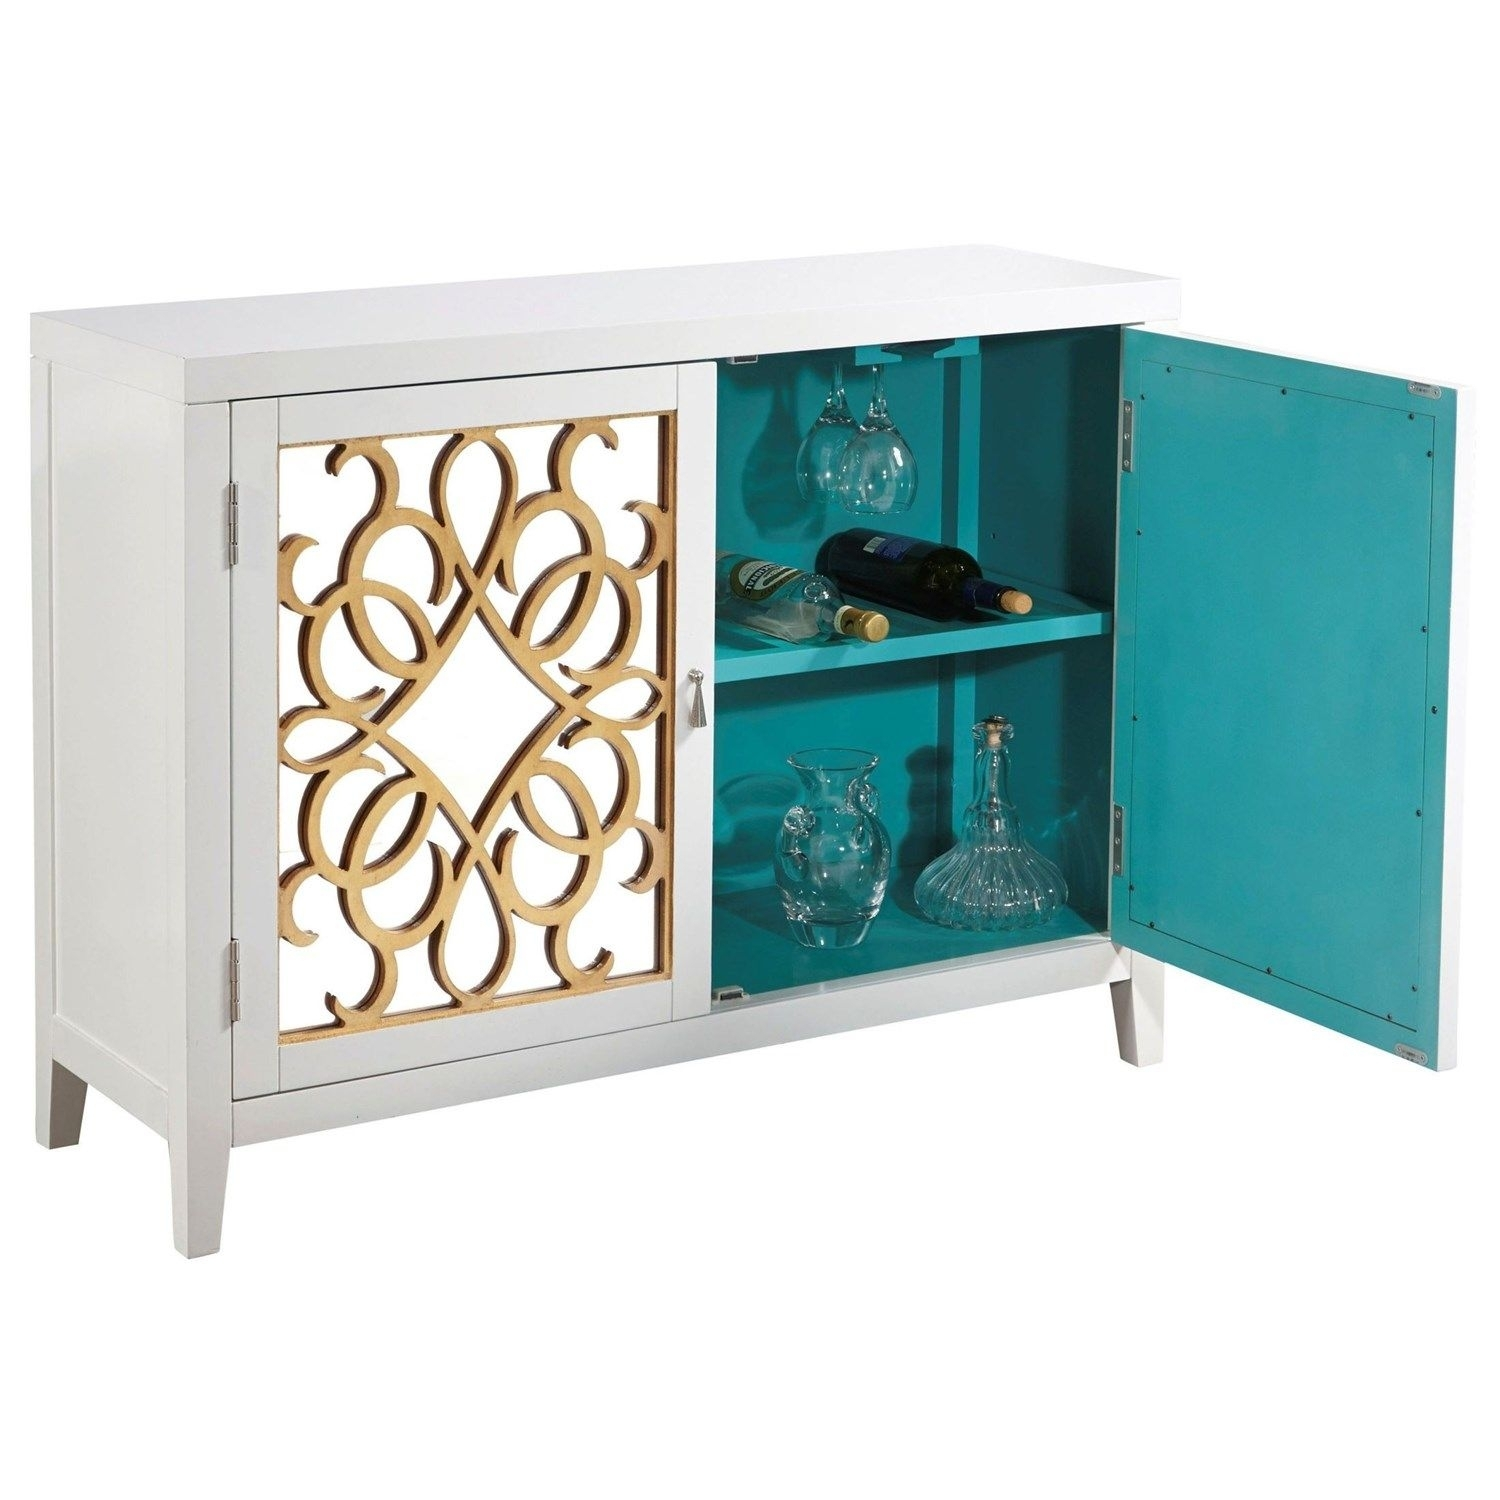 Pulaski 806023 Door Console In Calli | Home Bar | Pinterest within Mandara 3-Drawer 2-Door Sideboards (Image 22 of 30)